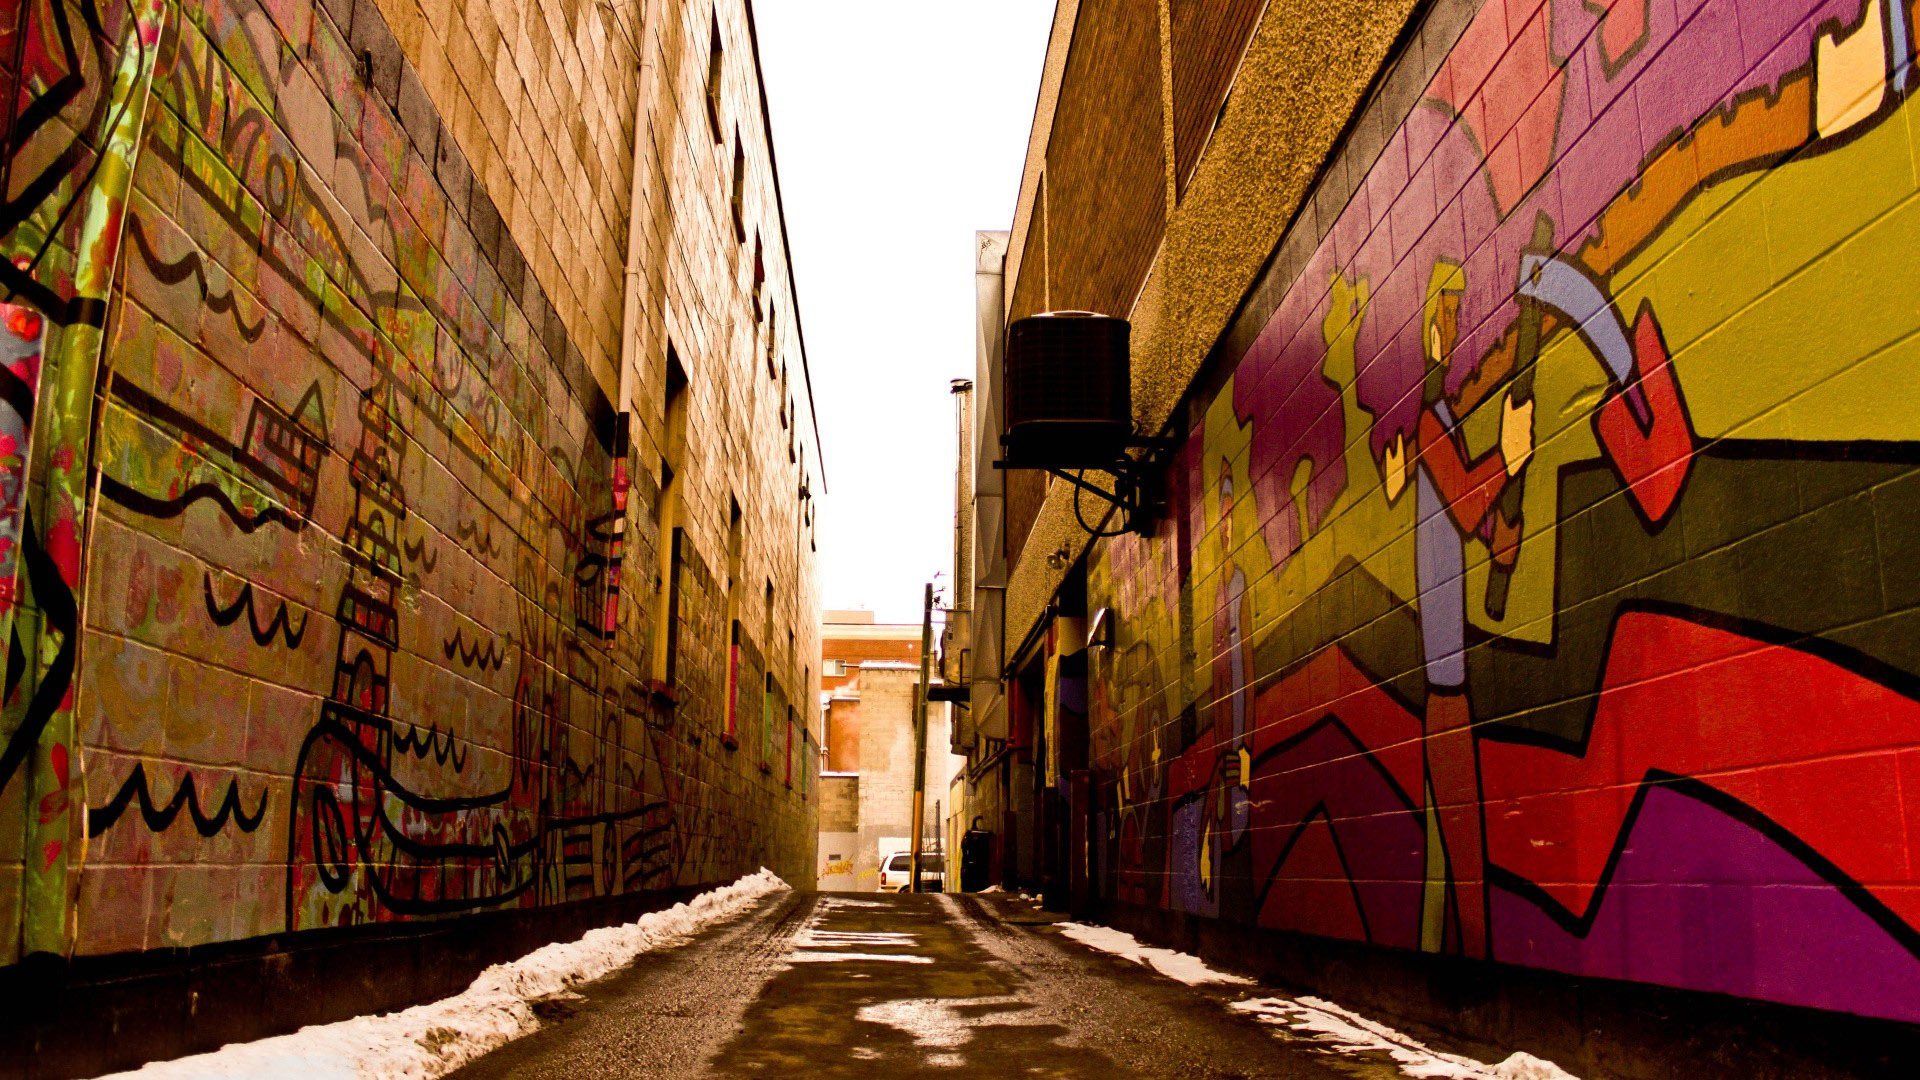 Graffiti covered alley walls wallpaper 11616 1920x1080